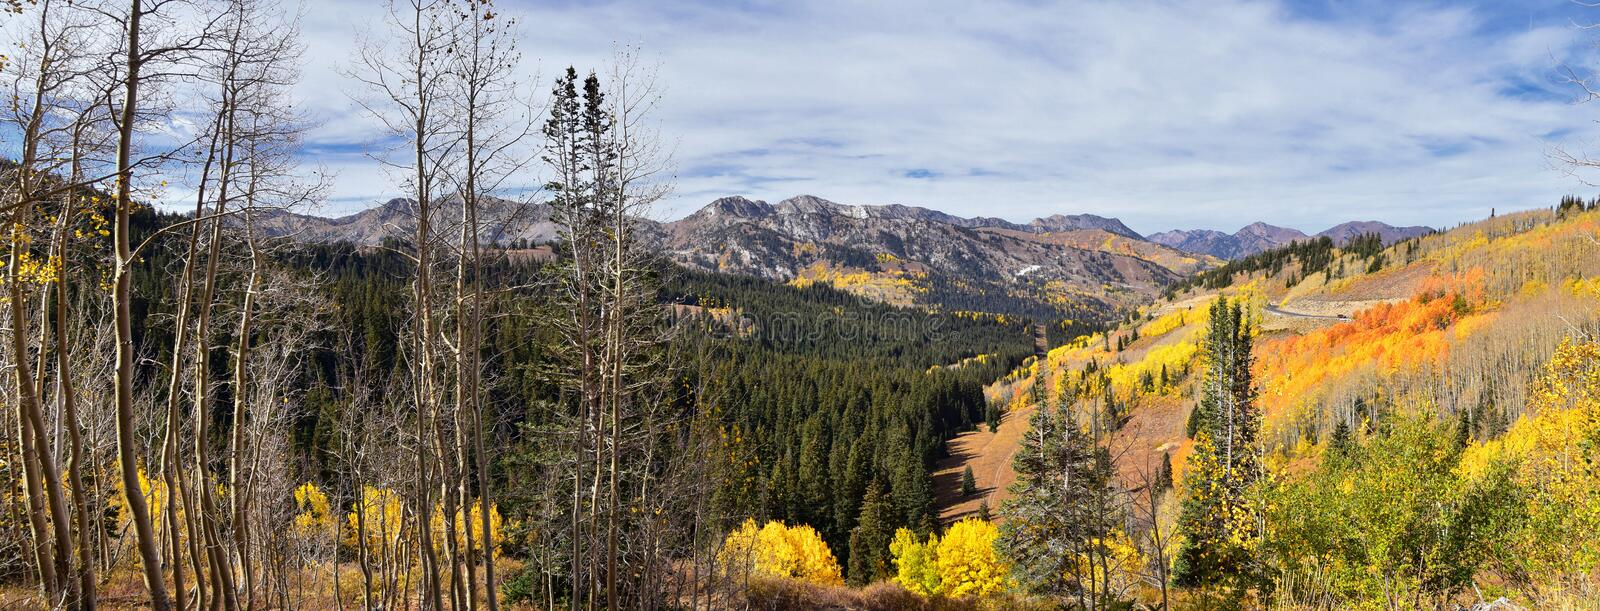 Guardsman Pass views of Panoramic Landscape of the Pass from the Brighton side by Midway and Heber Valley along the Wasatch Front. Rocky Mountains, Fall Leaf stock photography